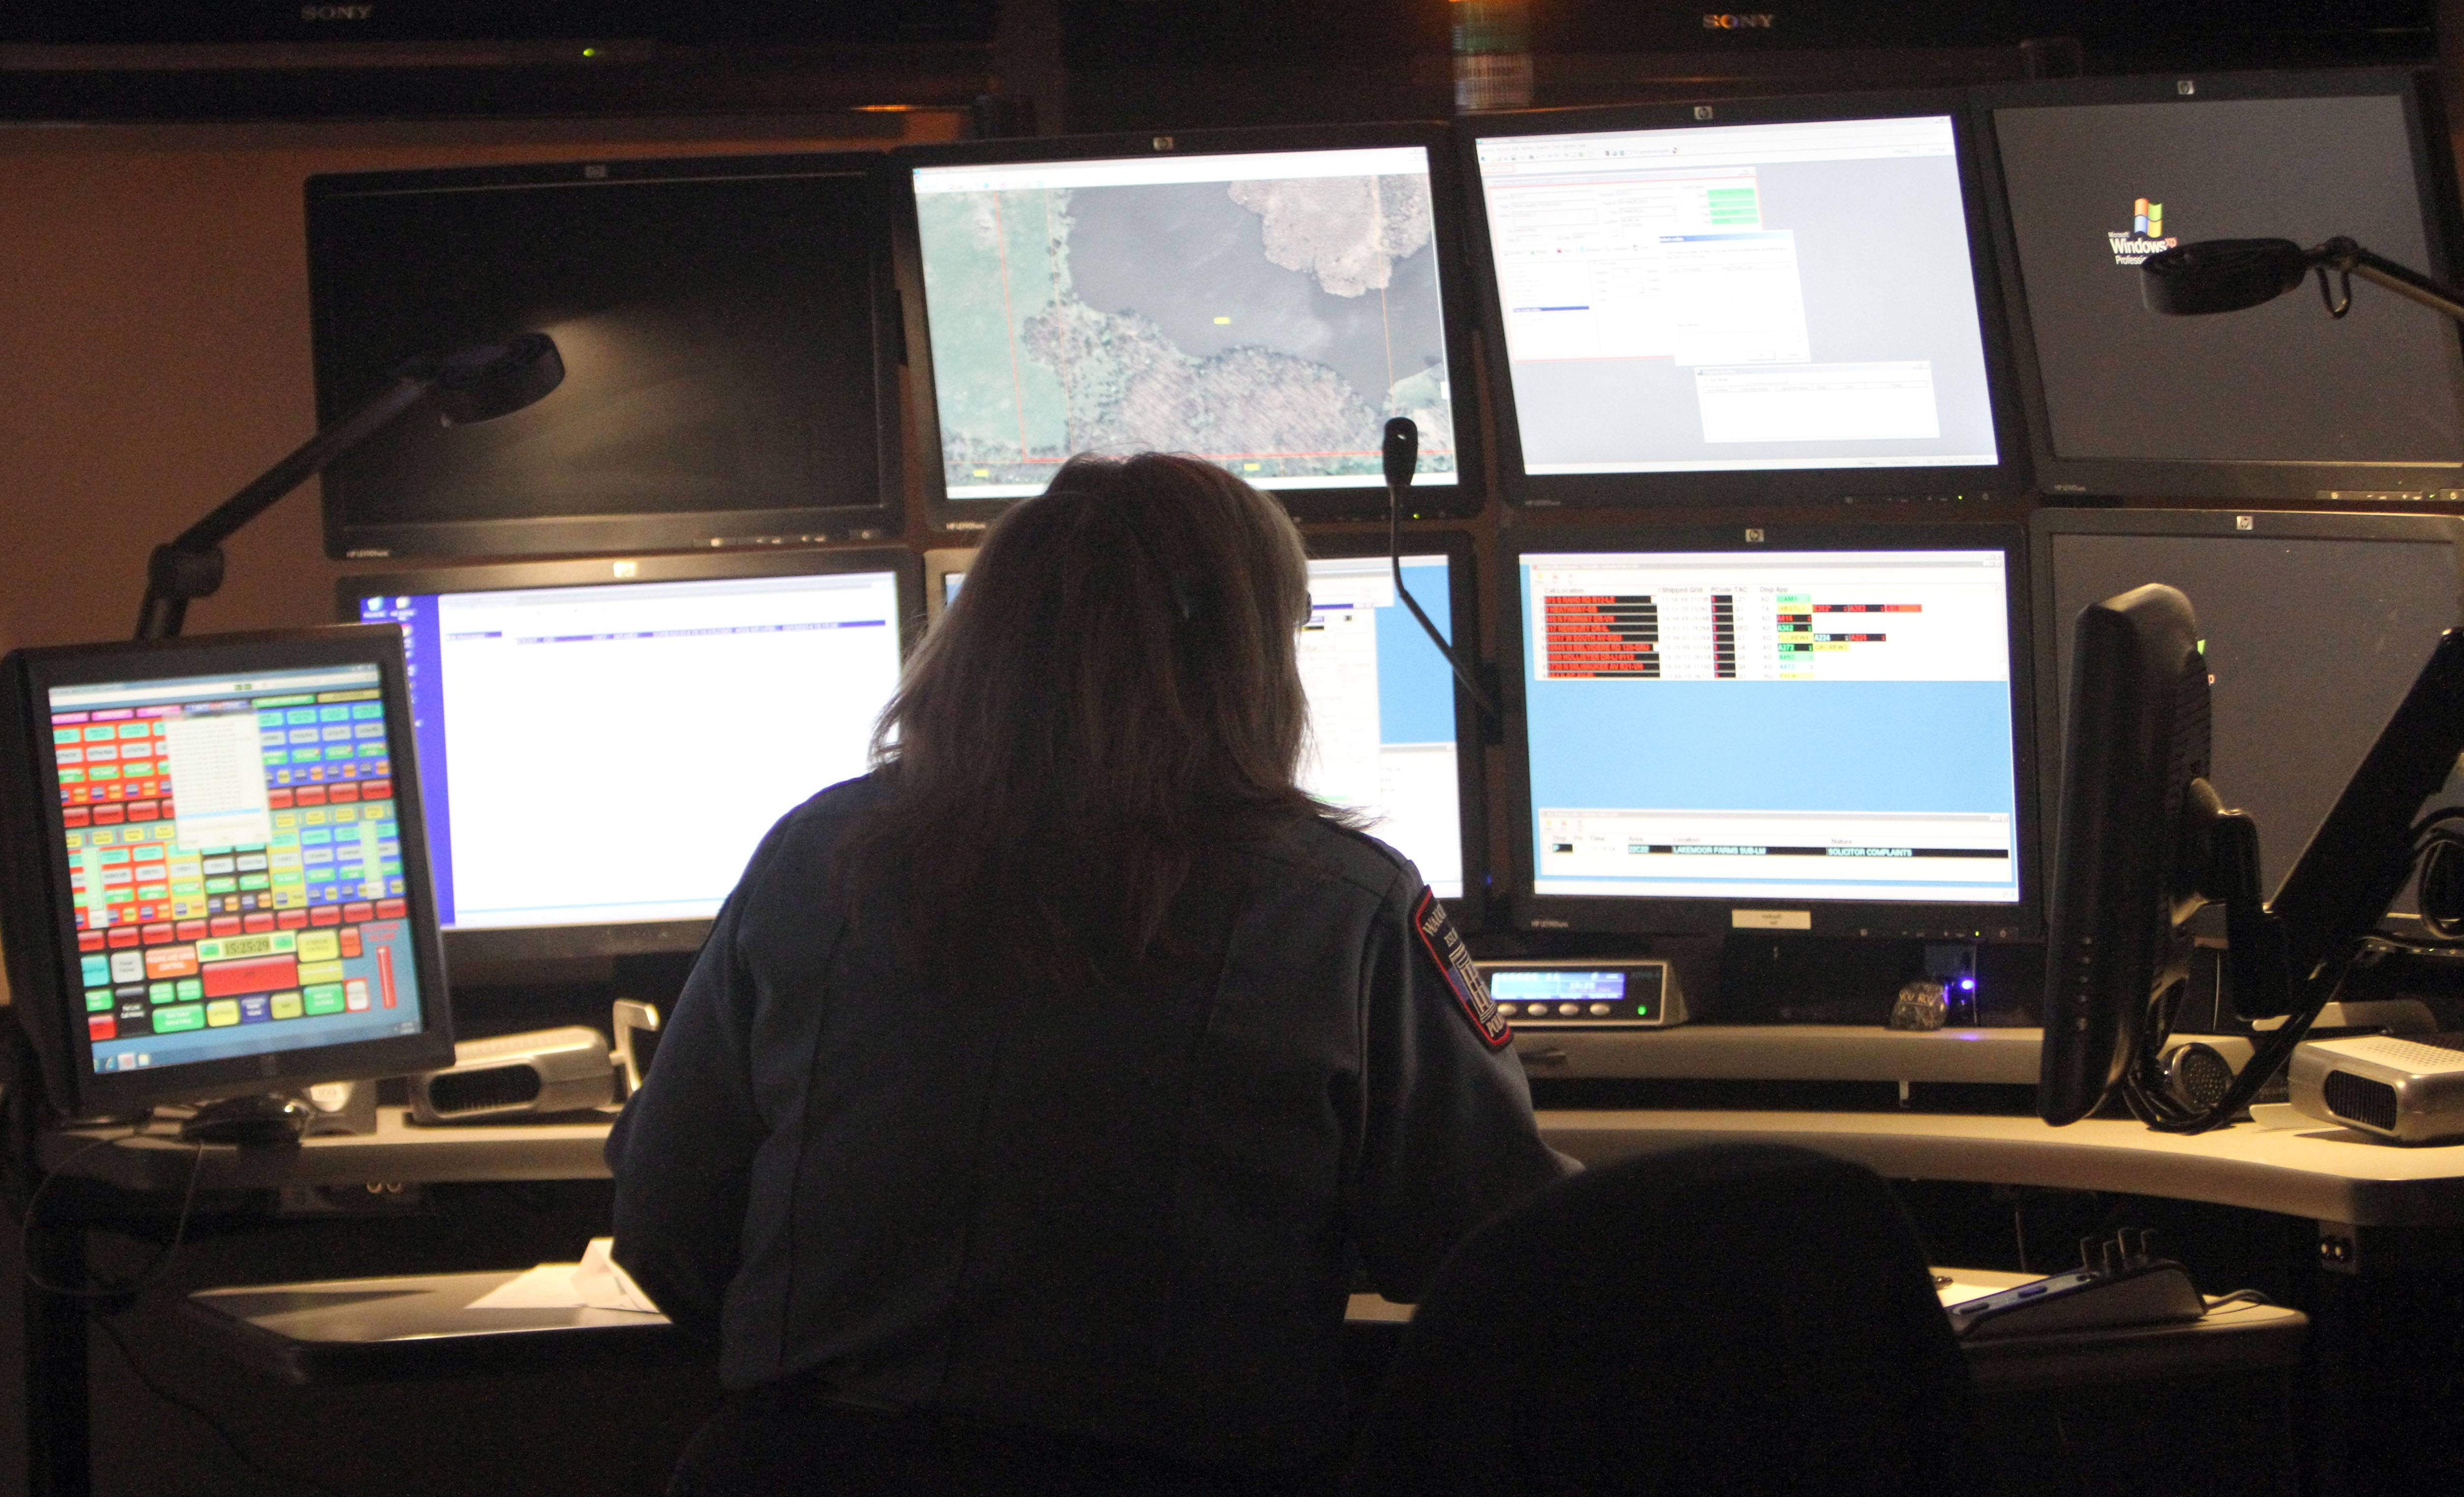 Trustees, residents want to settle Wauconda 911 dispatch center issue